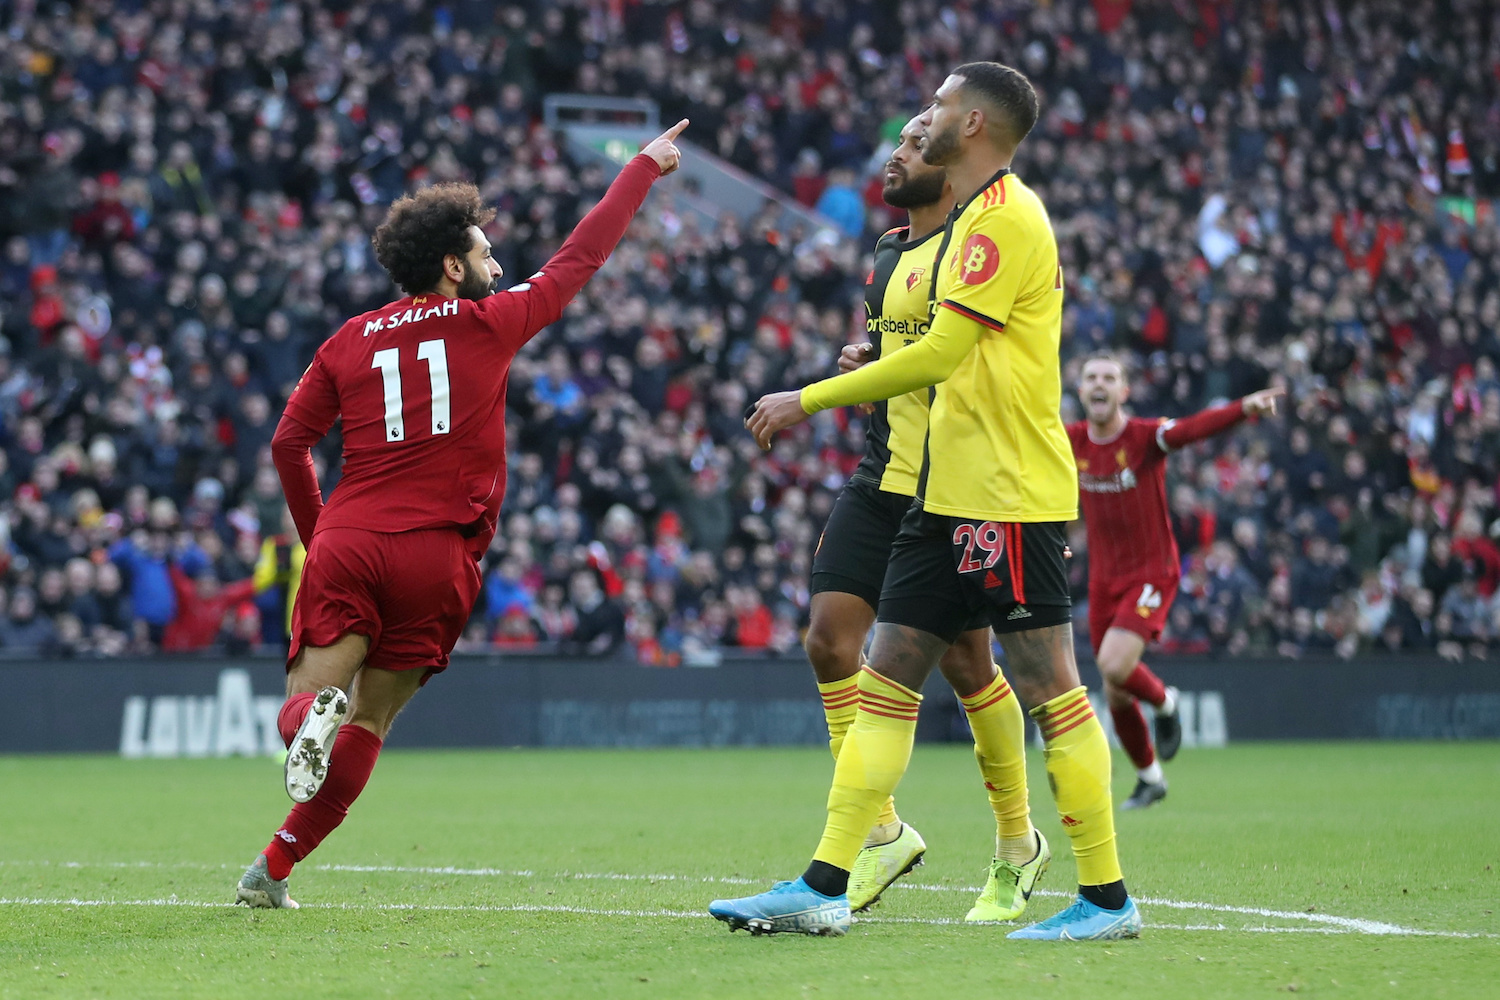 Mohamed Salah celebrates scoring Liverpool's first goal during their match against Watford at Anfield on Saturday. (Reuters Photo)